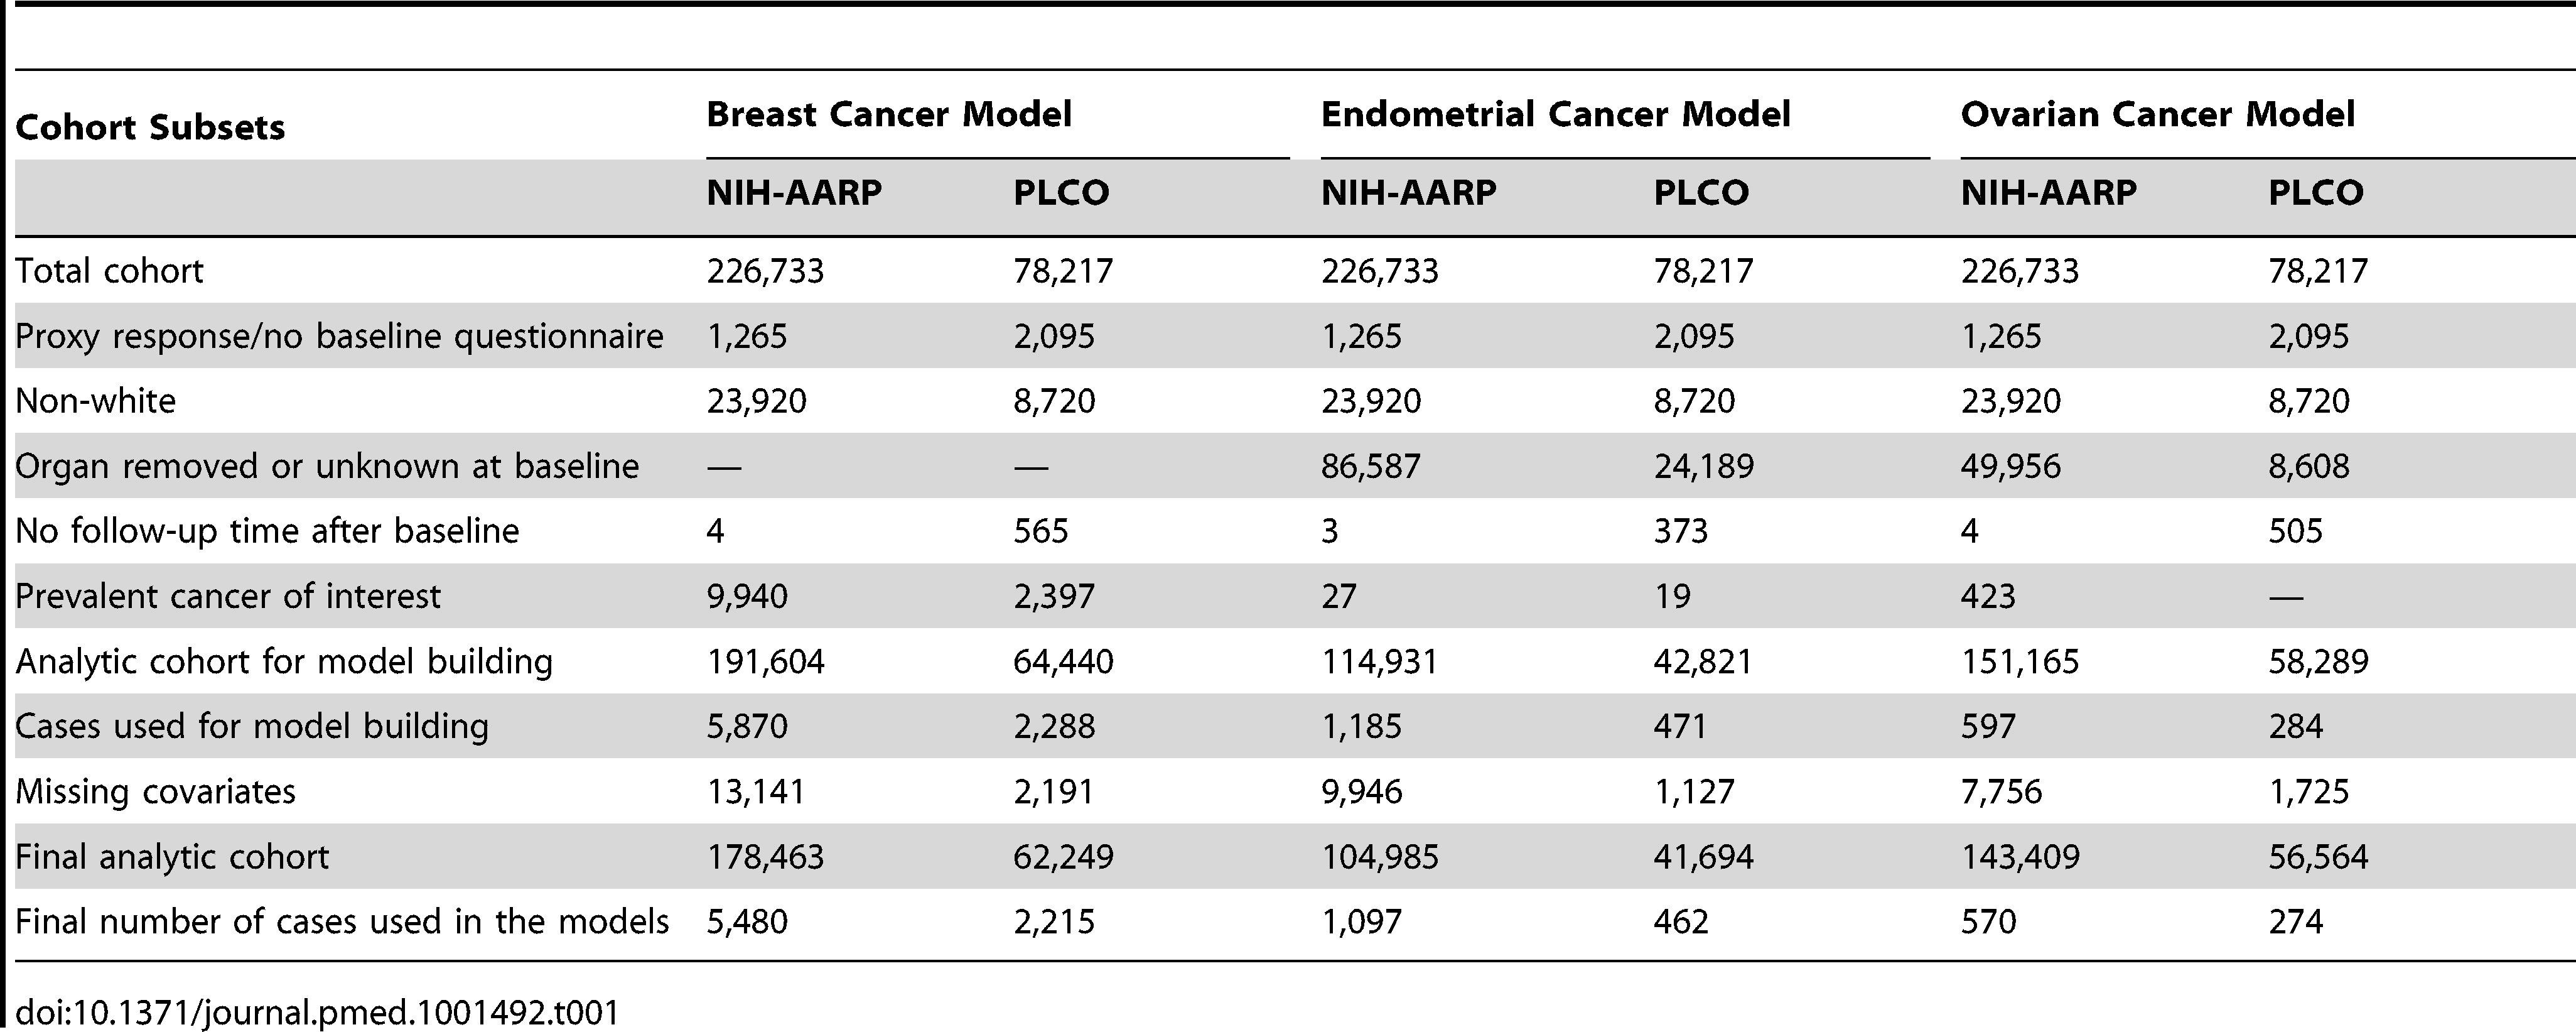 Study populations and exclusions for model development: NIH-AARP and PLCO cohorts at baseline.